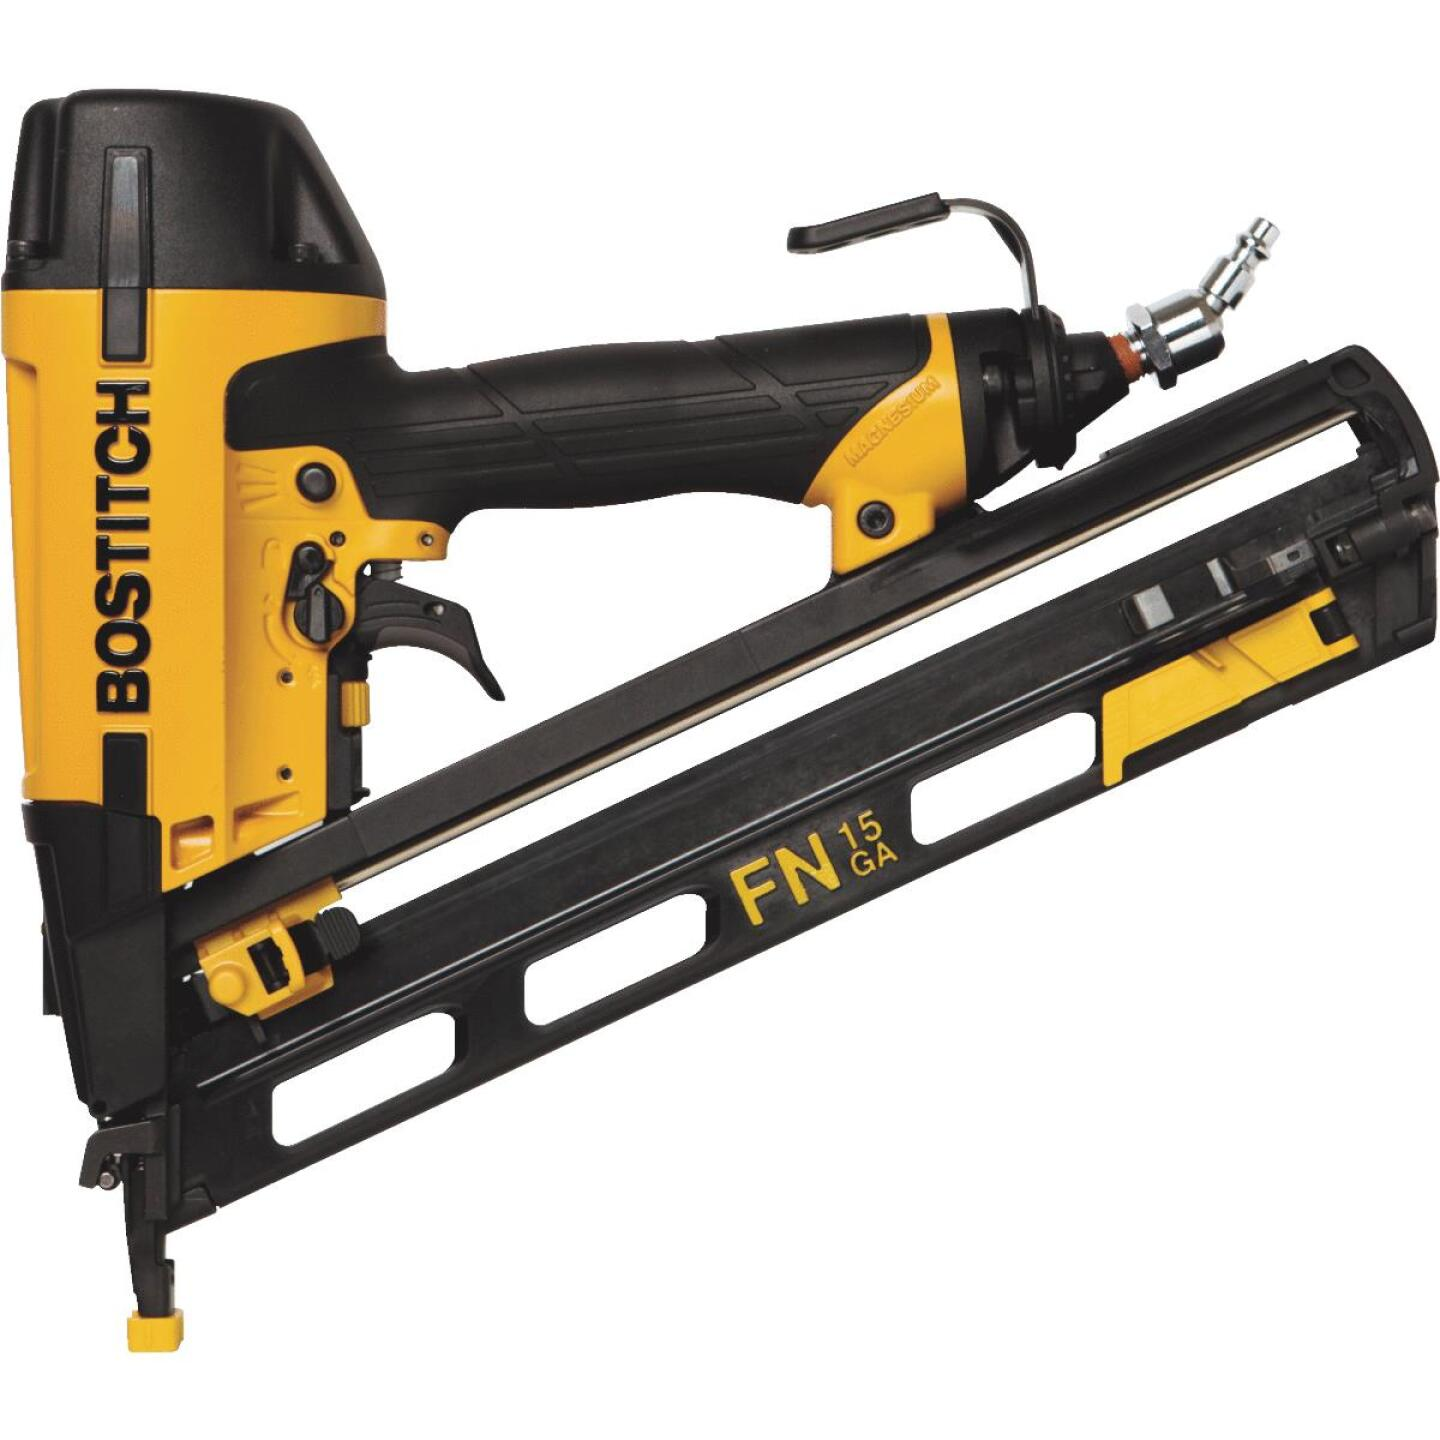 Bostitch 15-Gauge 2-1/2 In. Angled Finished Nailer Image 1